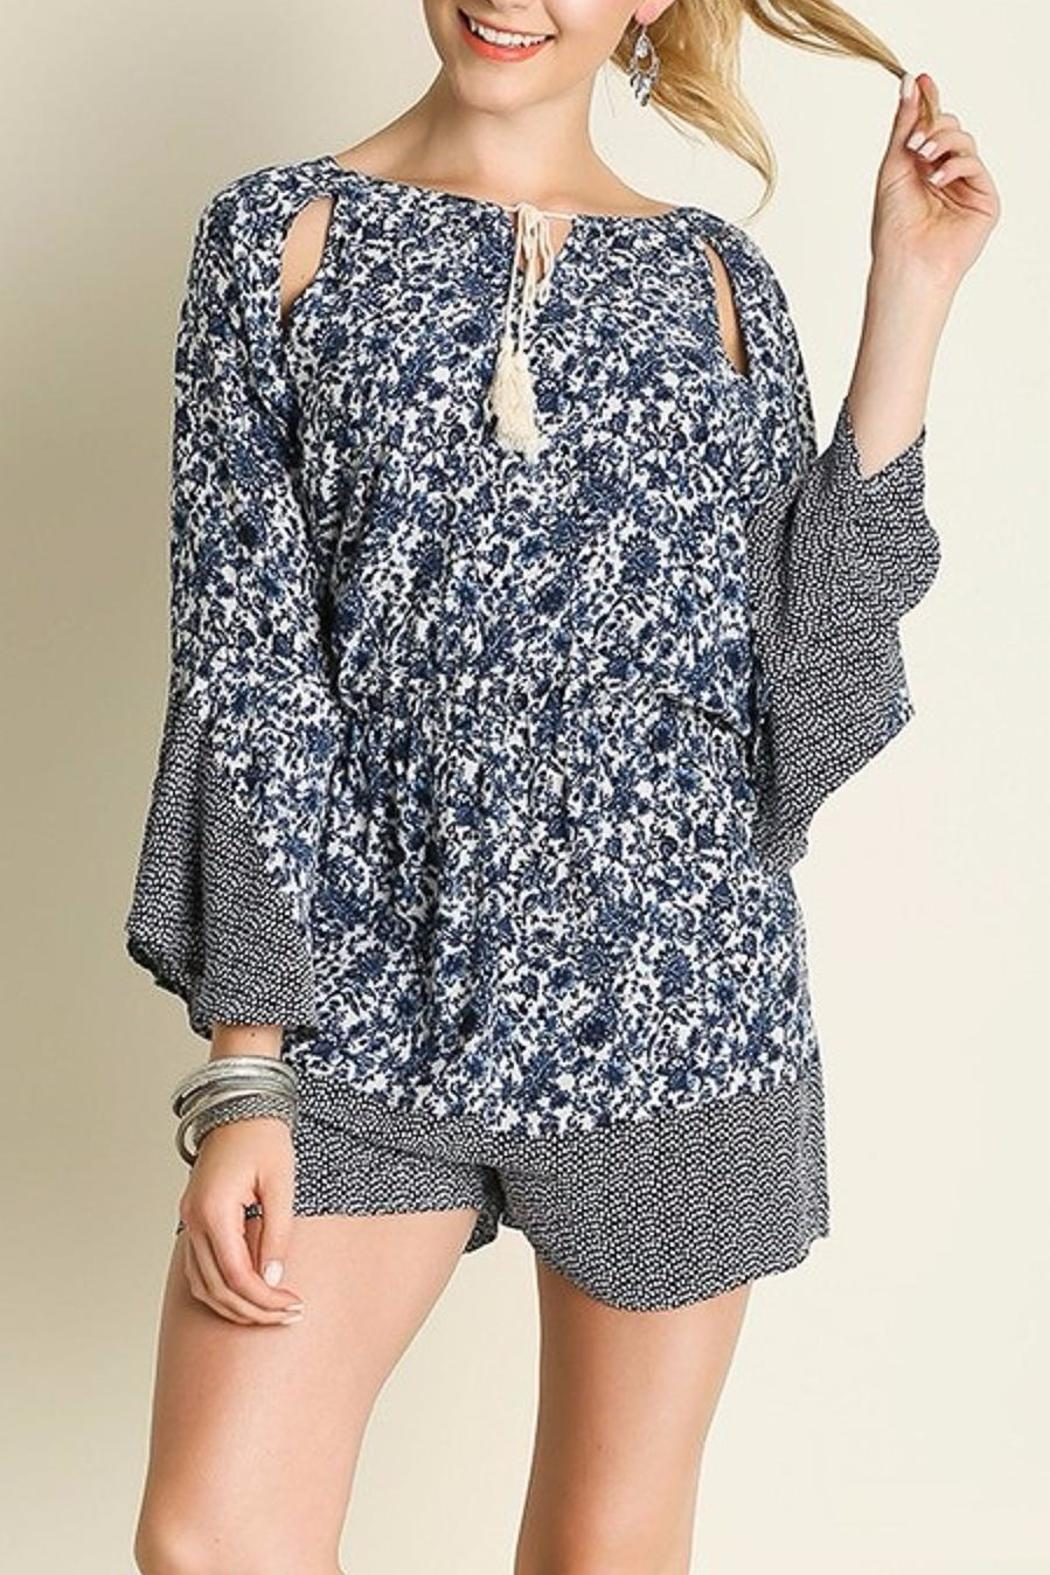 People Outfitter Adeline Romper - Main Image